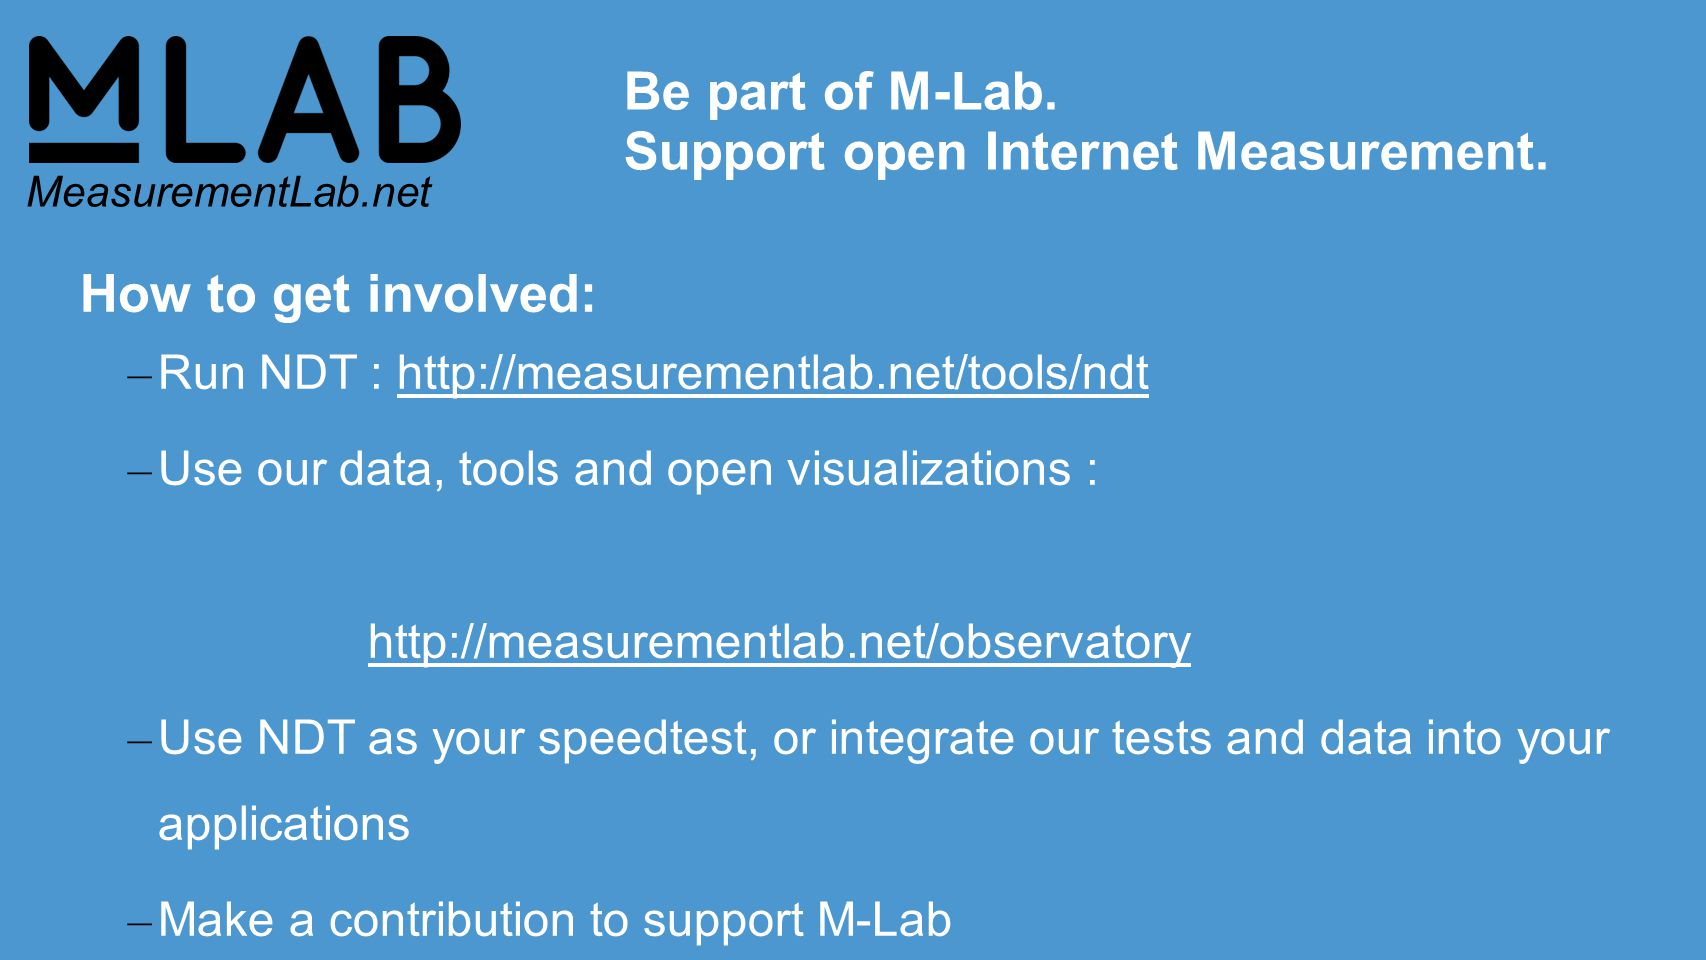 @NewAmerica @OTI @MeasurementLa b The M-Lab Story Independent, Public Interest, Network Performance Measurement MeasurementLab.net Chris Ritzo Senior Technologist & Project Manager, Measurement Lab critzo@opentechinstitute.org